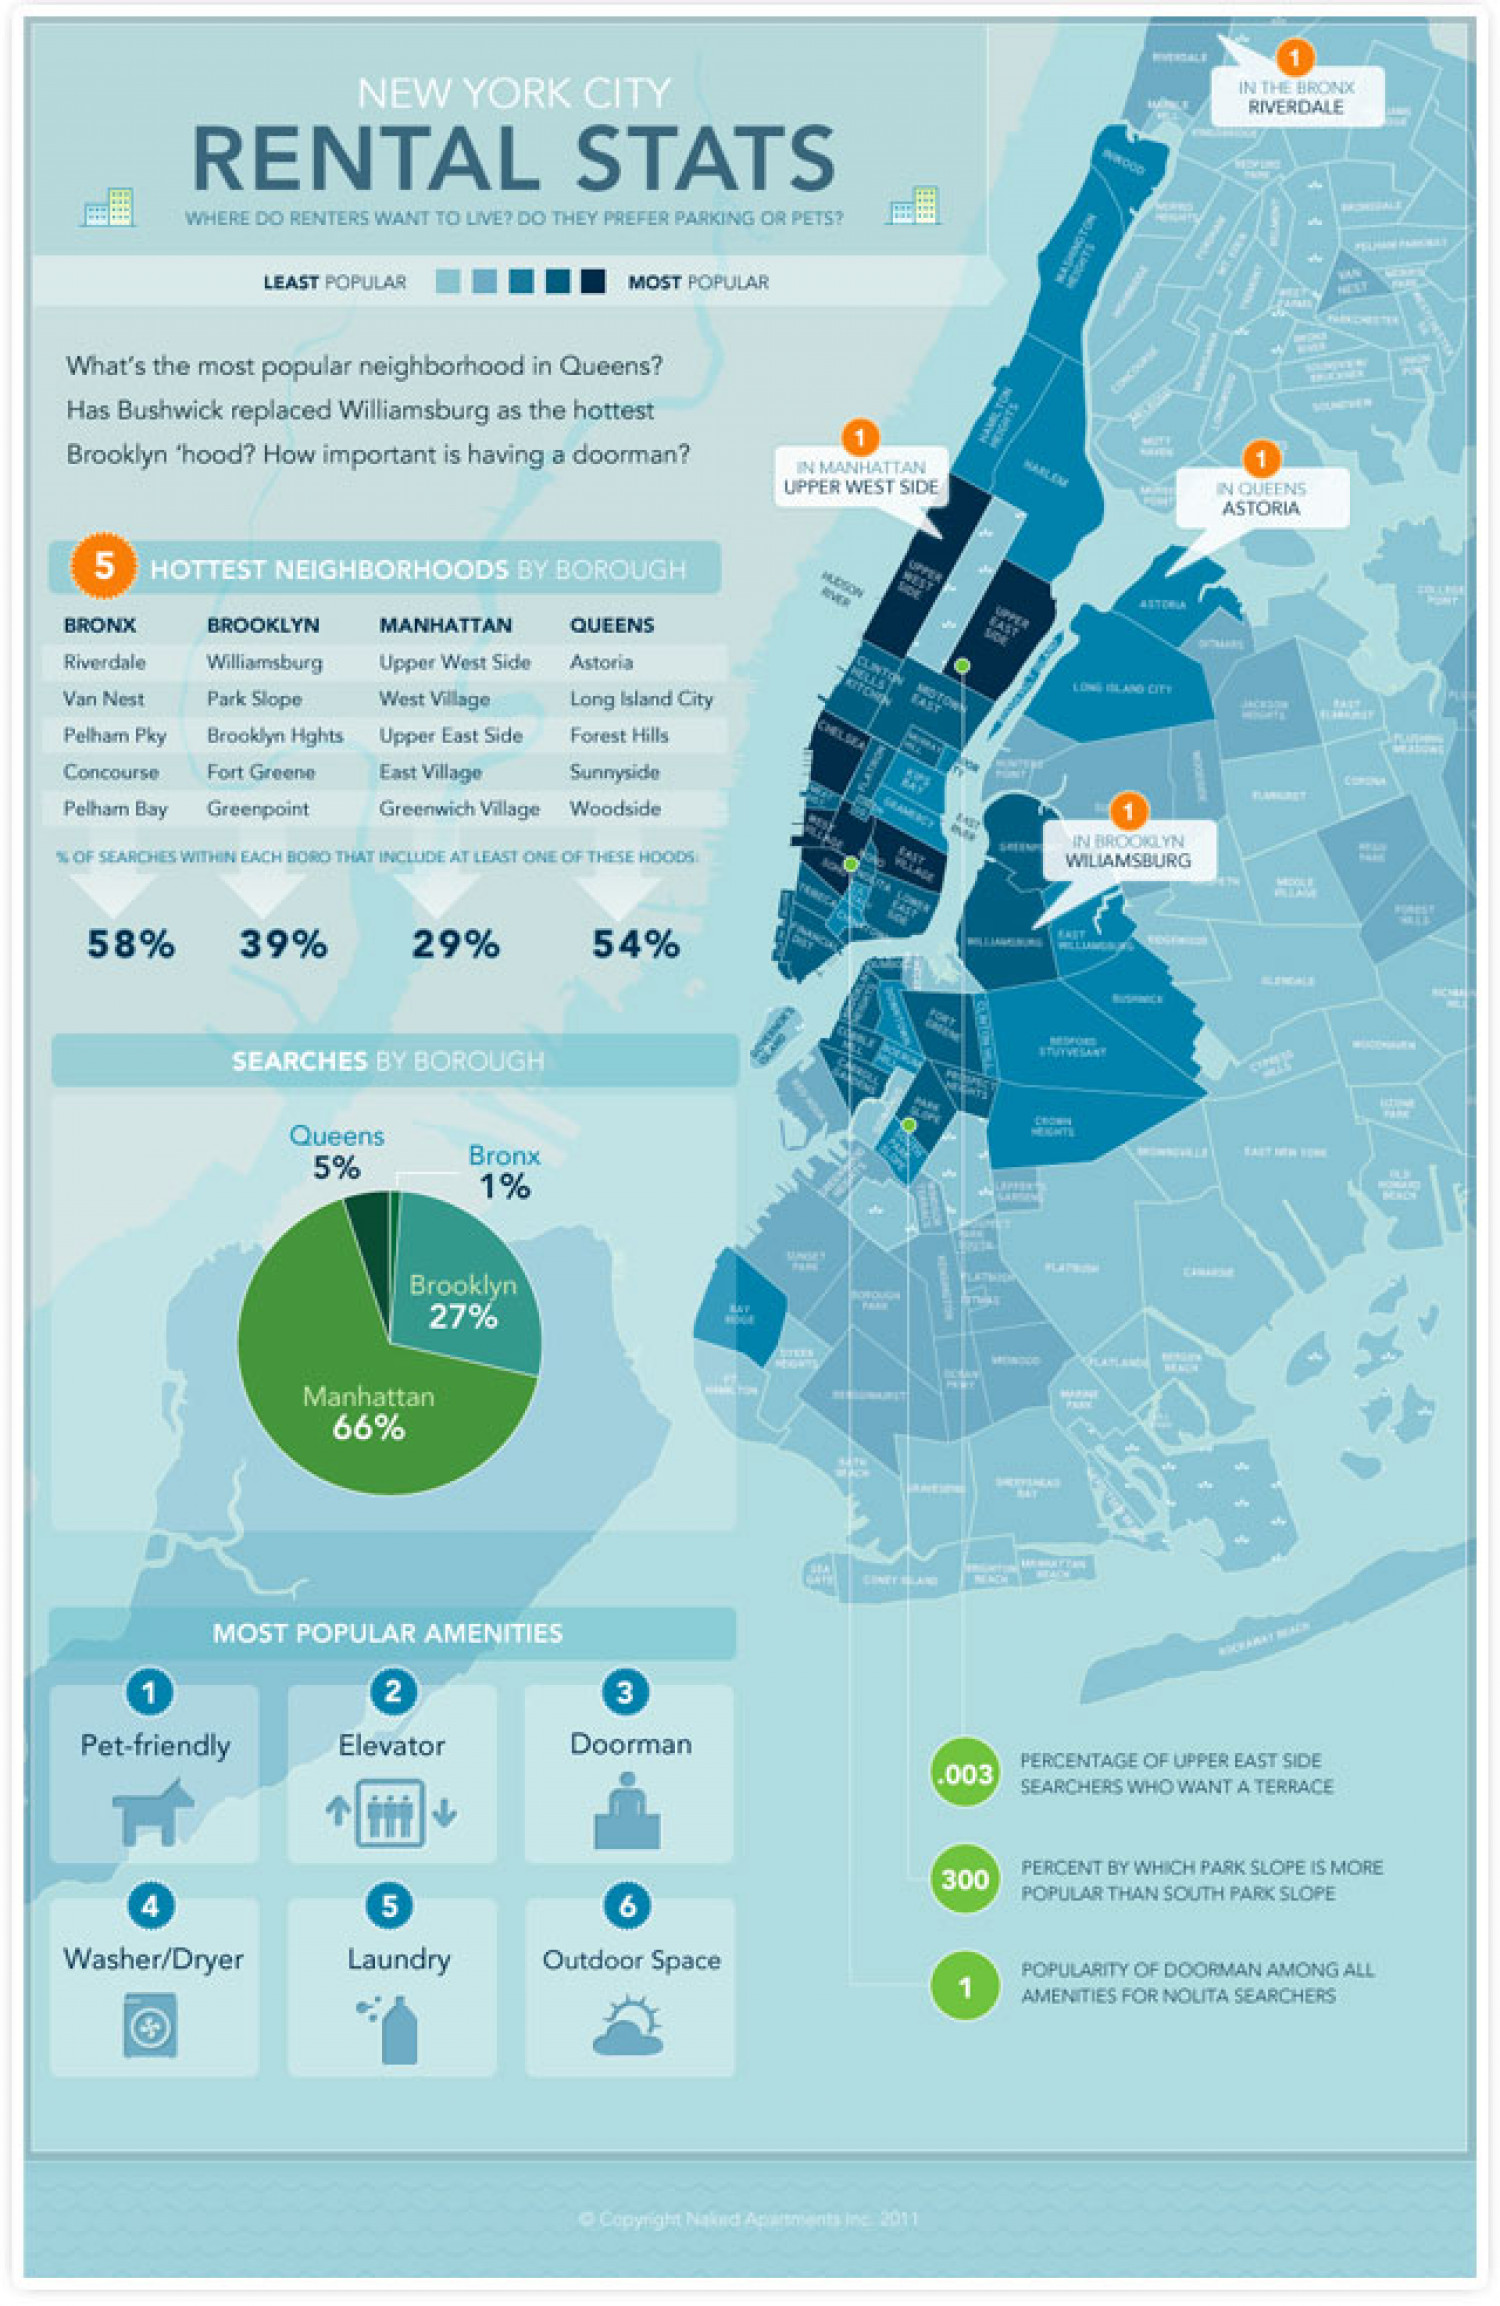 New york city rental stats for New york city rental